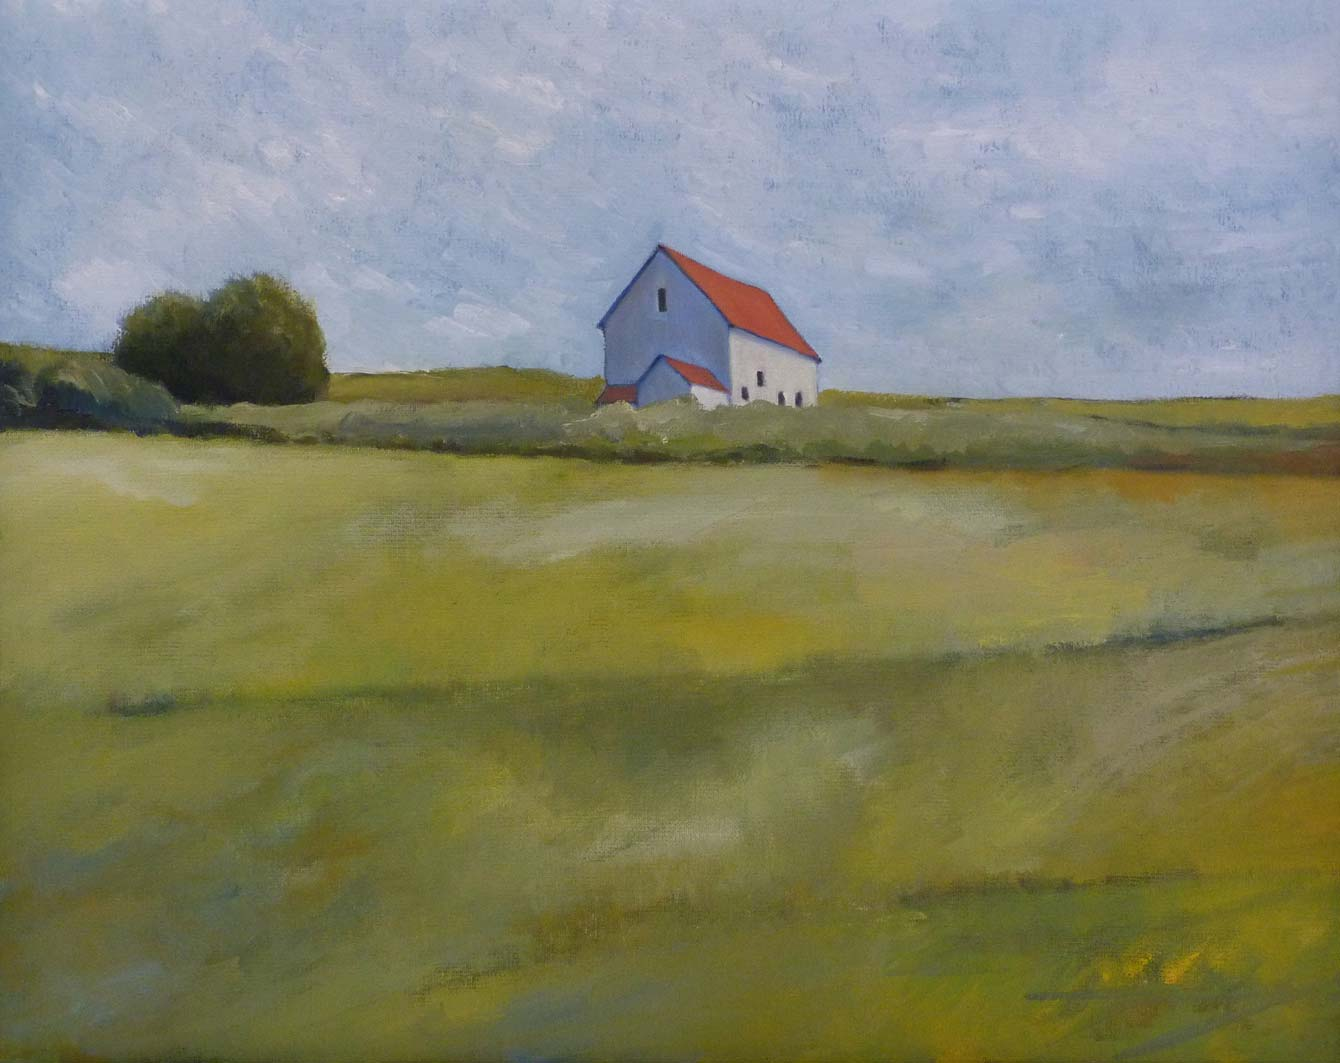 House in Fields, oil on canvas, private collection